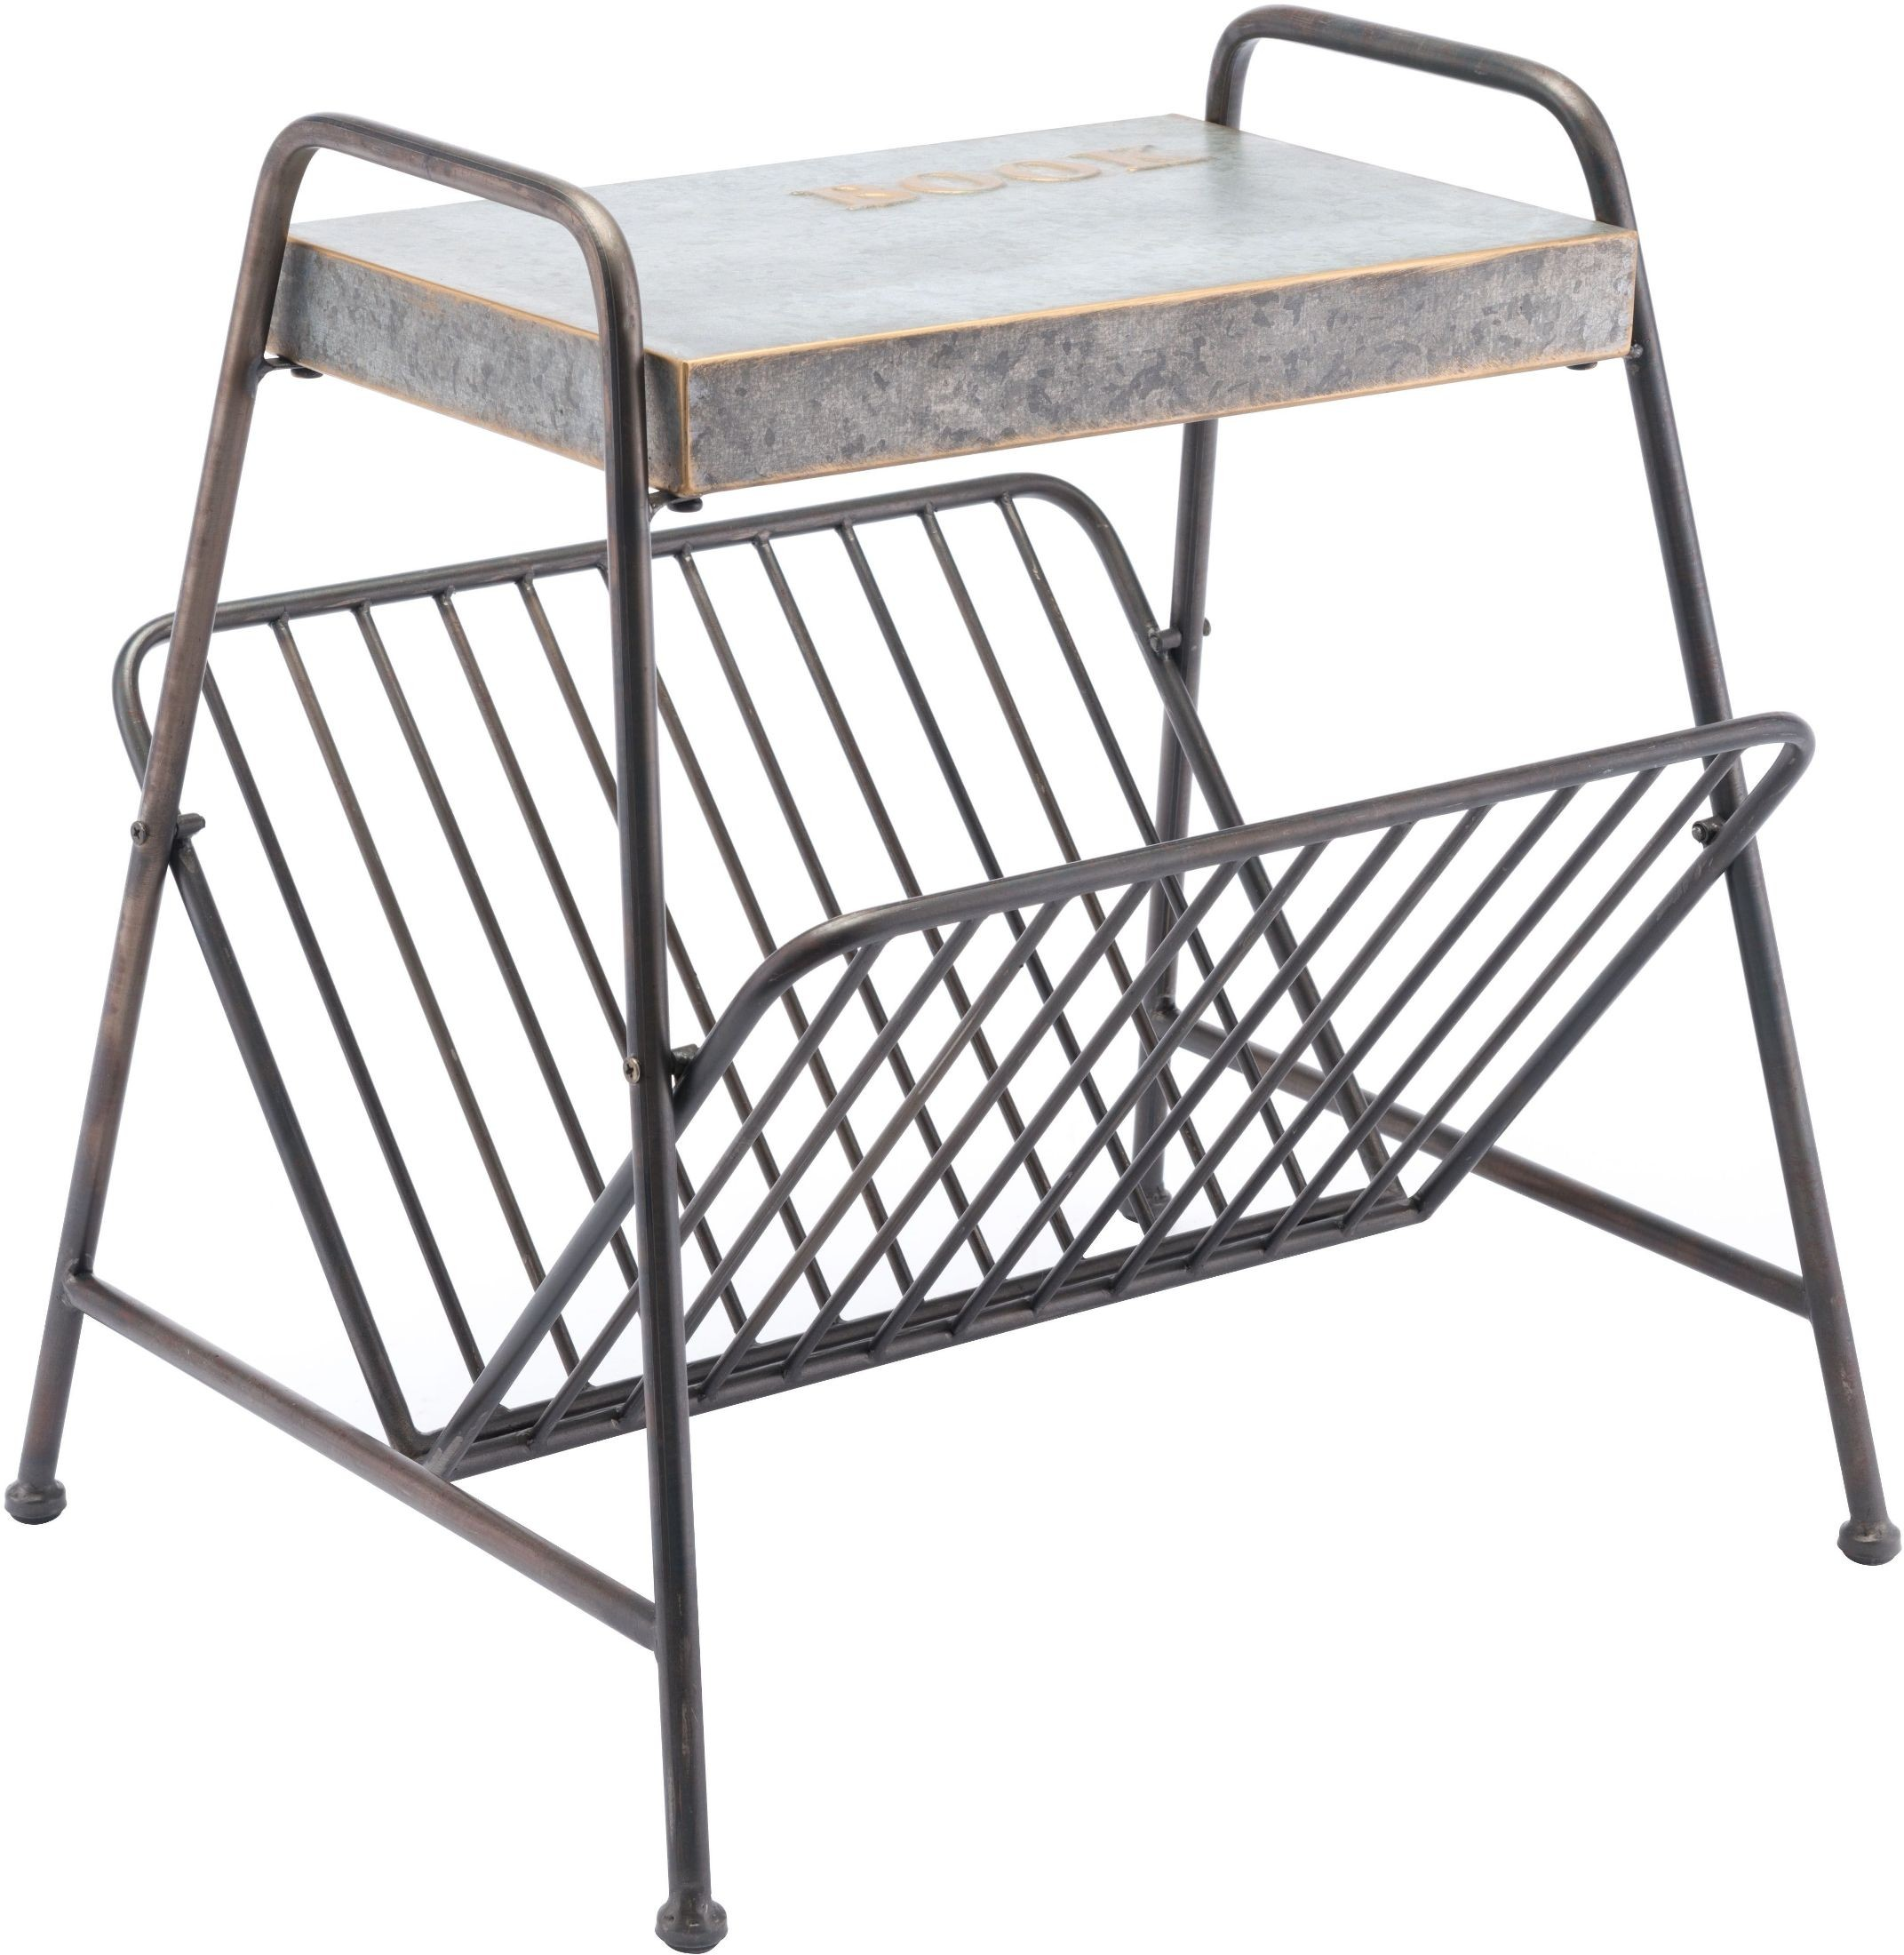 Fleur de Lis Metal Wall Magazine Rack. $ $ FREE SHIPPING Regency Glass Top Metal Magazine Table. $ $ Laredo Western Magazine Basket Set. $ $ Arezzio Wall Magazine Rack. Starting at $ Starting at $ FREE SHIPPING Nexus Dark Gray Faux Suede Magazine Holder.